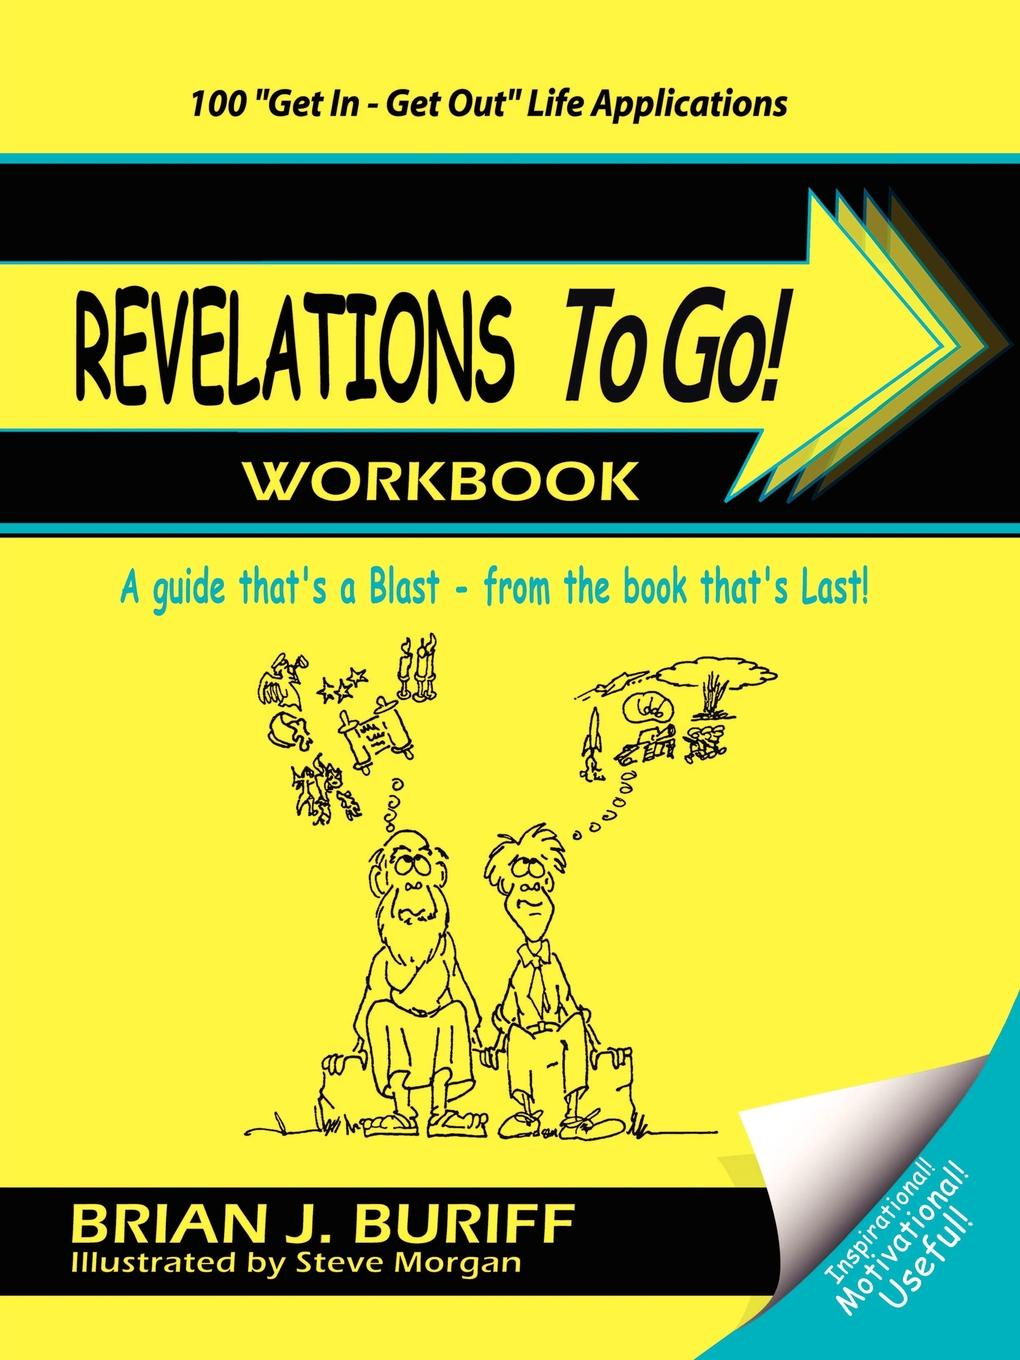 Brian J. Buriff Revelations to Go! Workbook. A Guide That's a Blast from the Book That's Last! blast pro series moscow самый зрелищный турнир по cs go